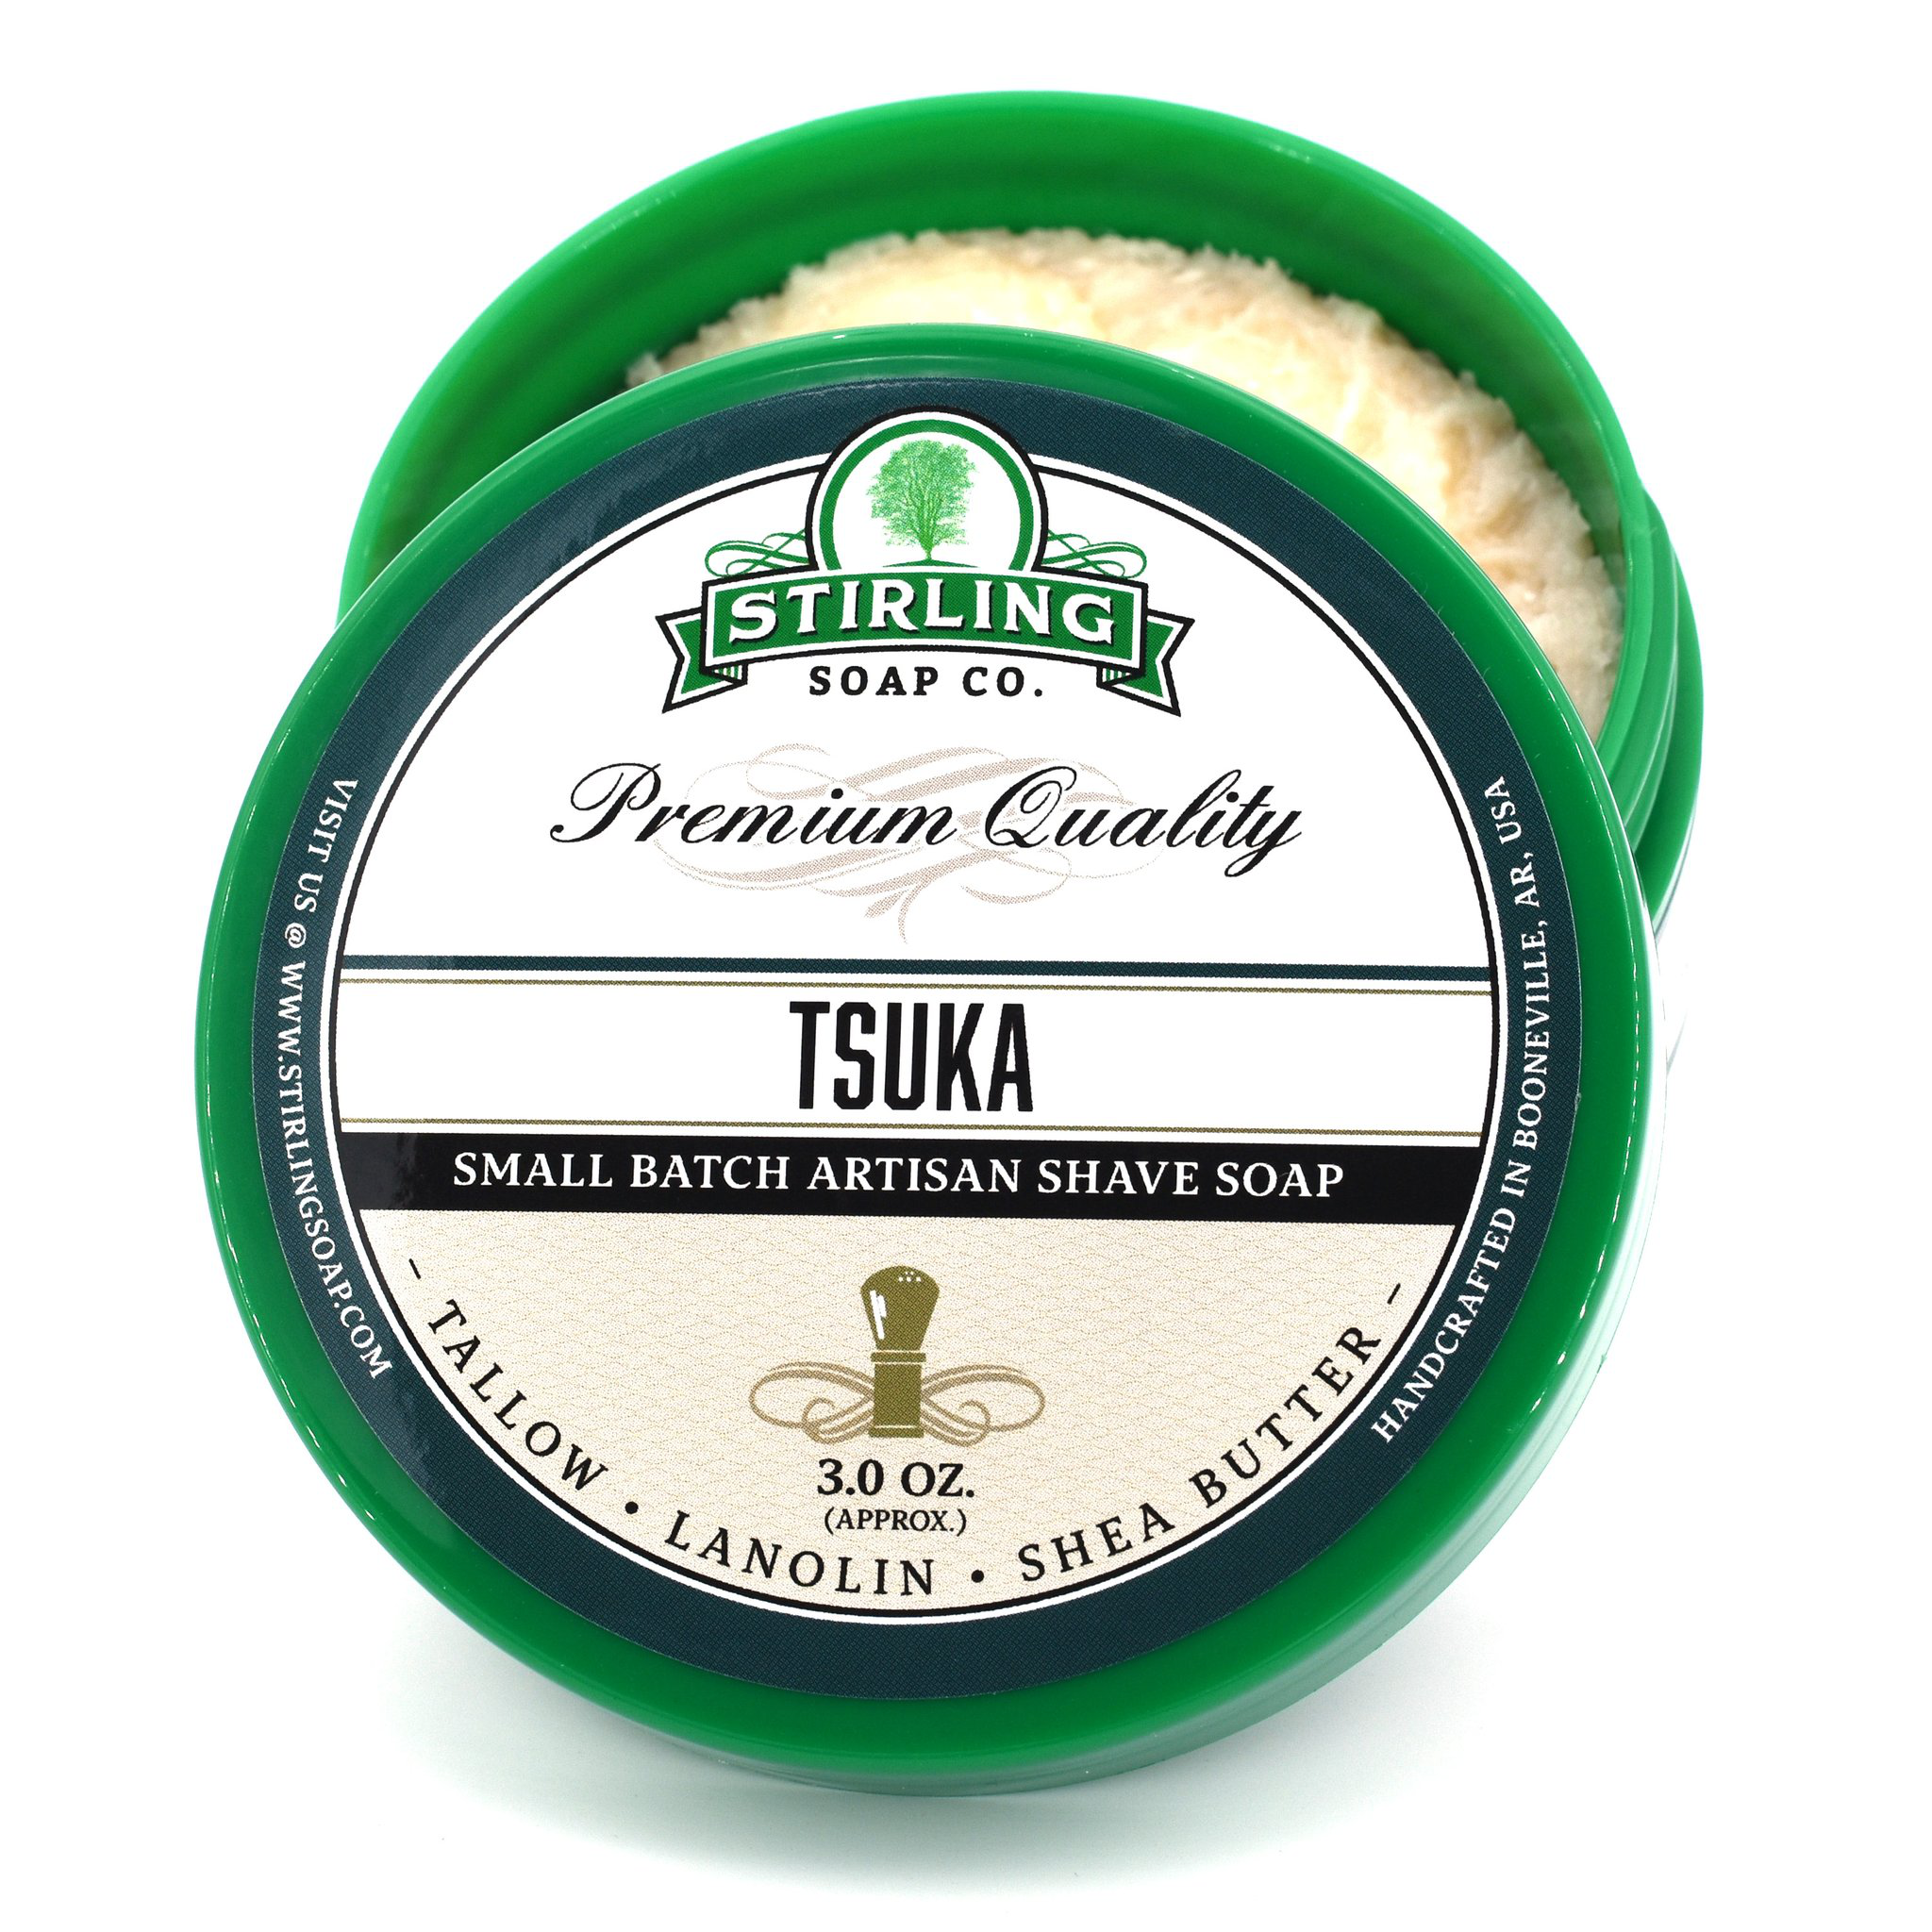 Stirling Soap Co. - Tsuka - Soap image